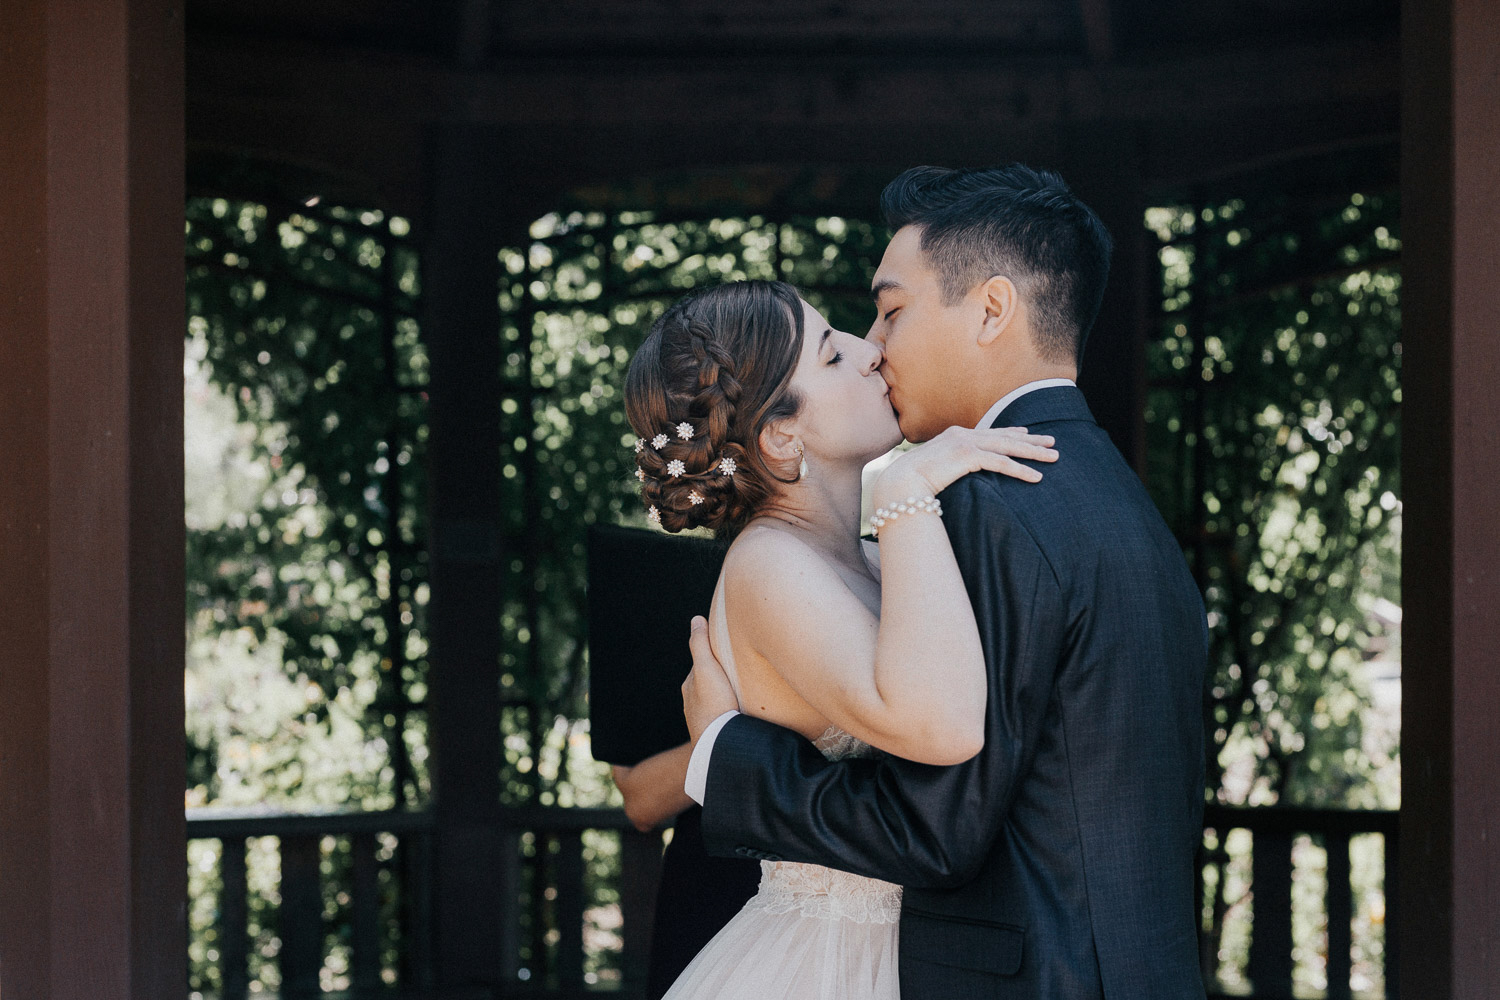 Image of bride and groom kiss each other on ceremony